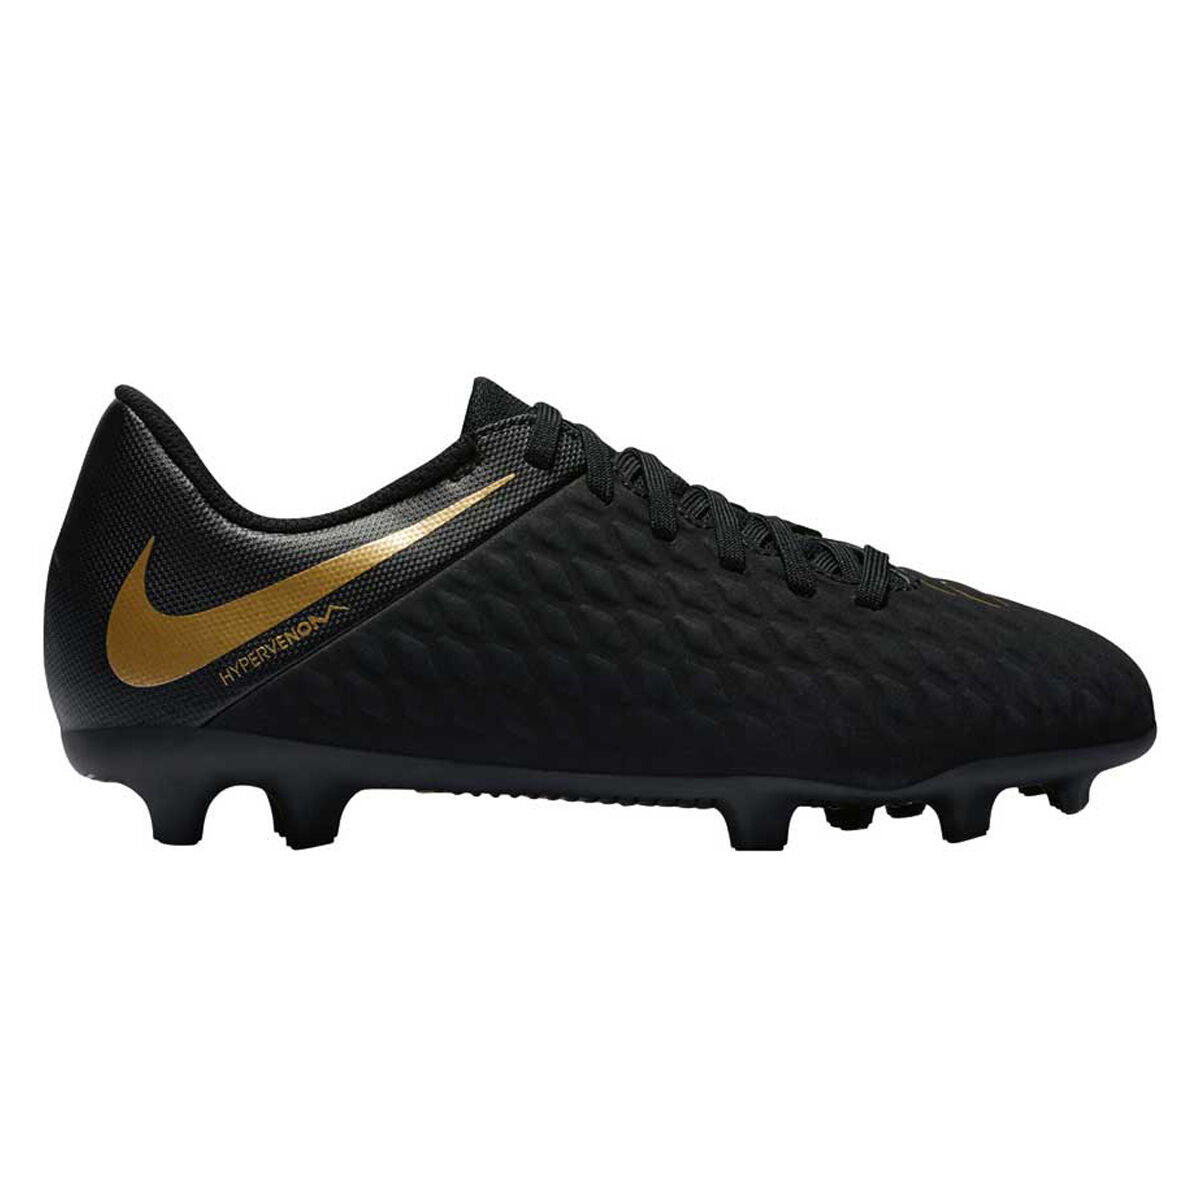 100% authentic c7ee1 f425d ... reduced nike hypervenom phantom iii club kids football boots black gold  us 5 black f0645 55831